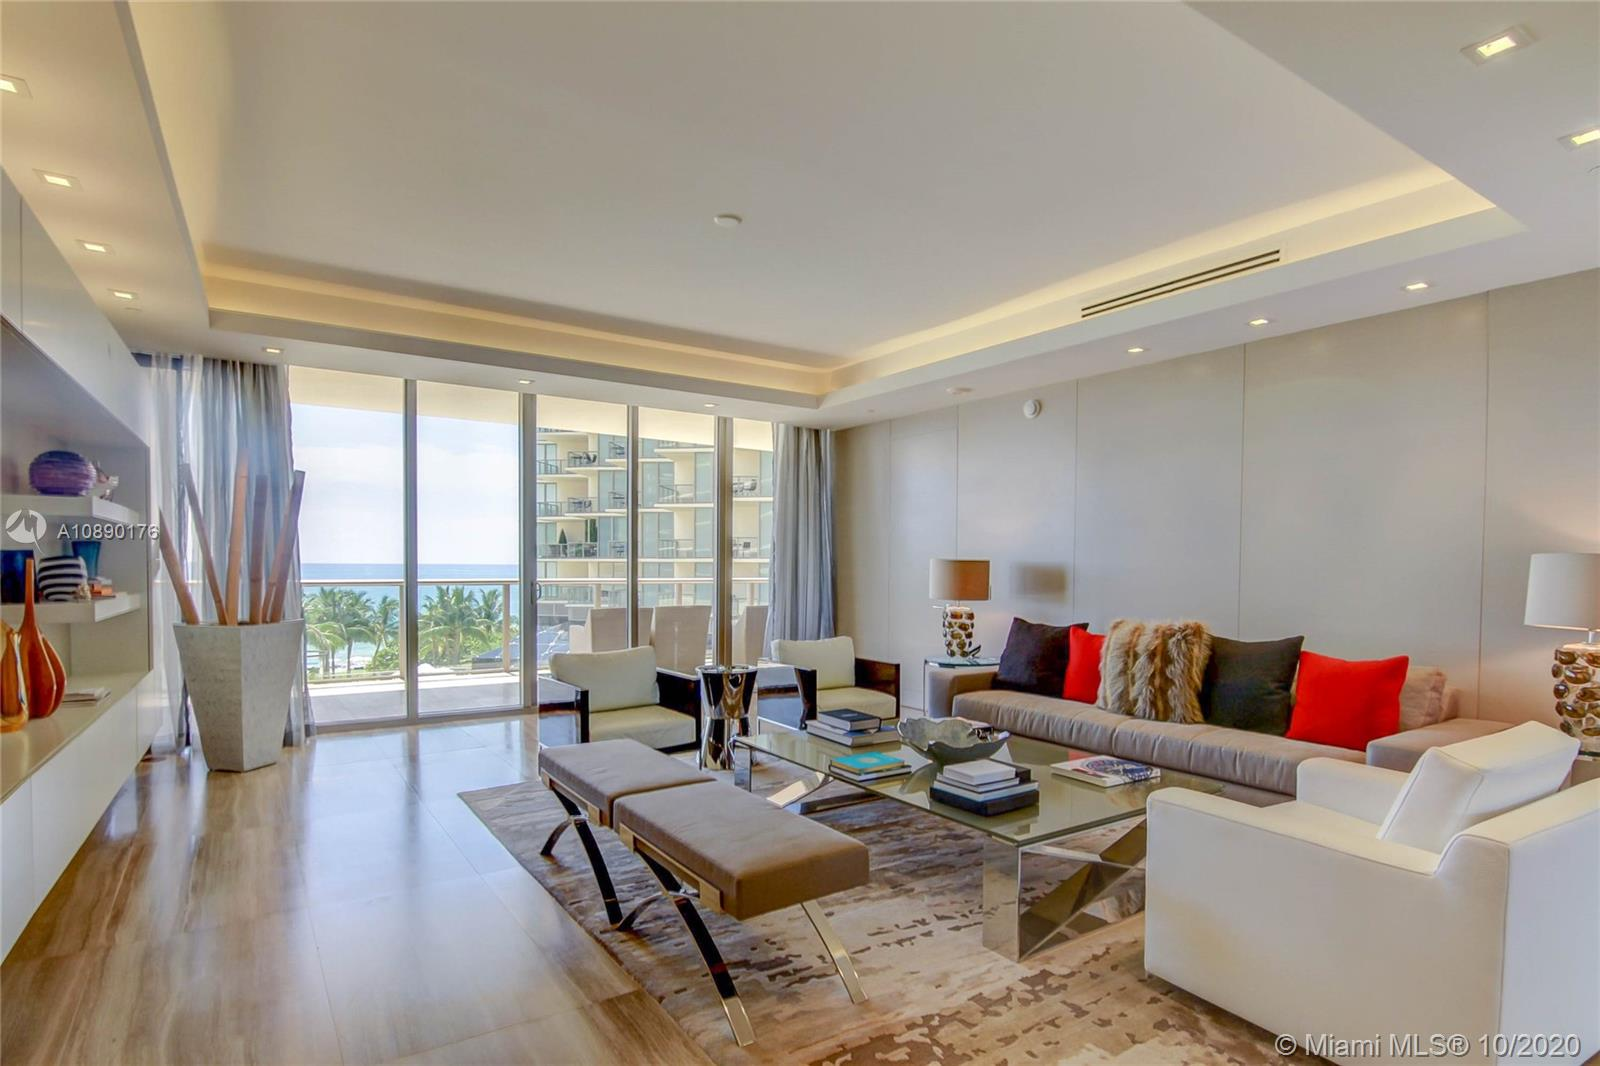 image #1 of property, Bal Harbour North South C, Unit 503N